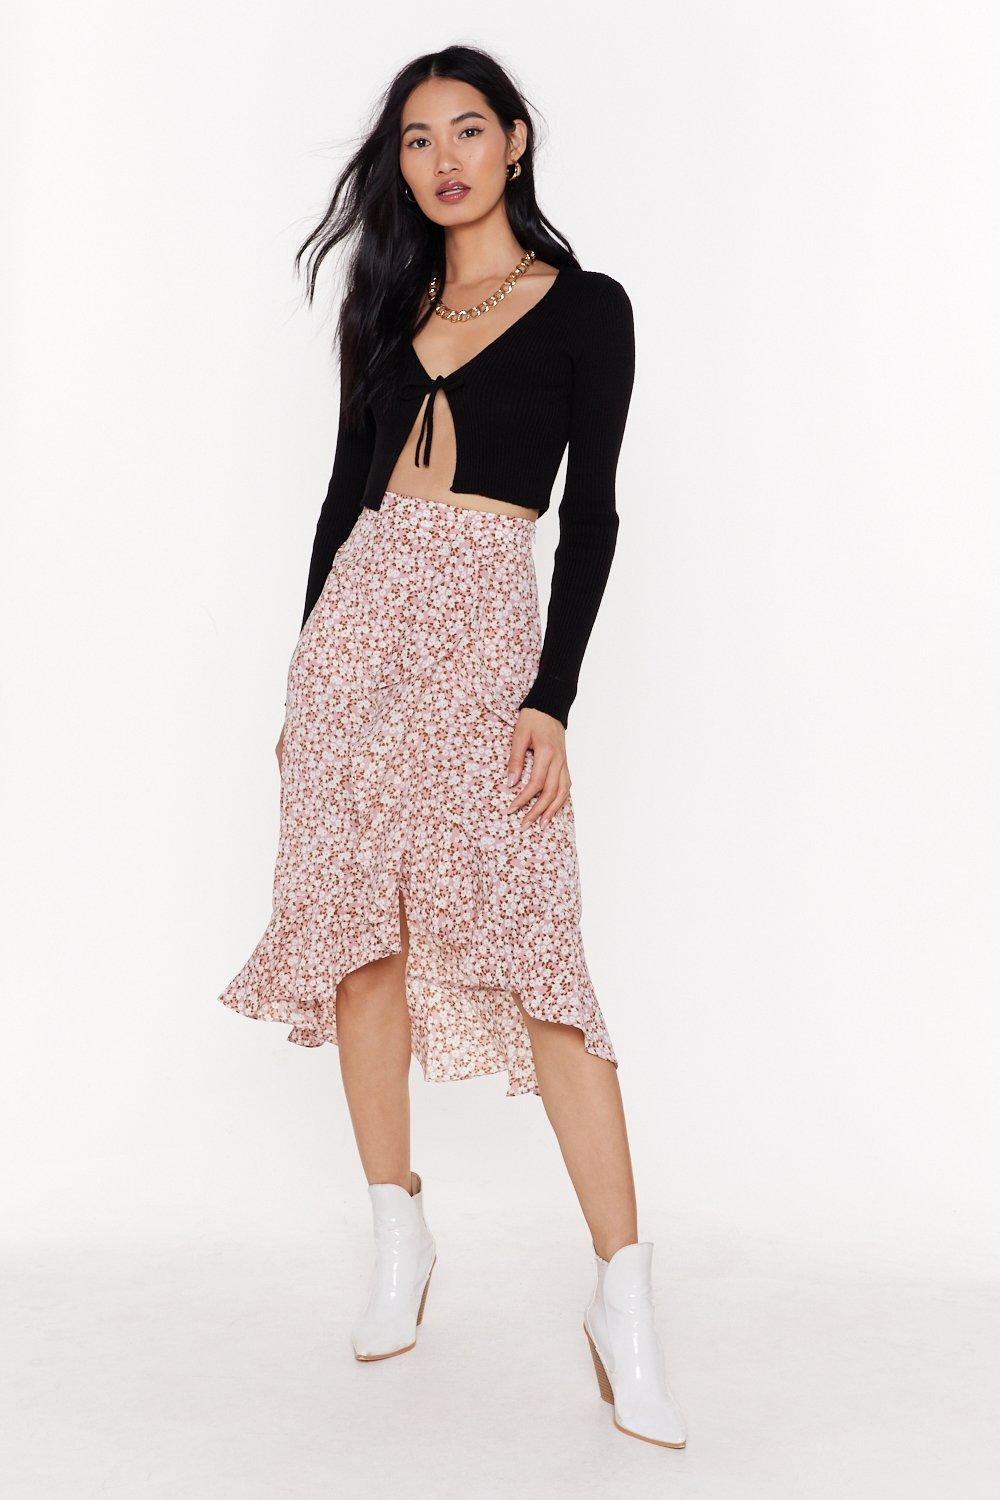 Grow Old With Me Floral Midi Skirt by Nasty Gal